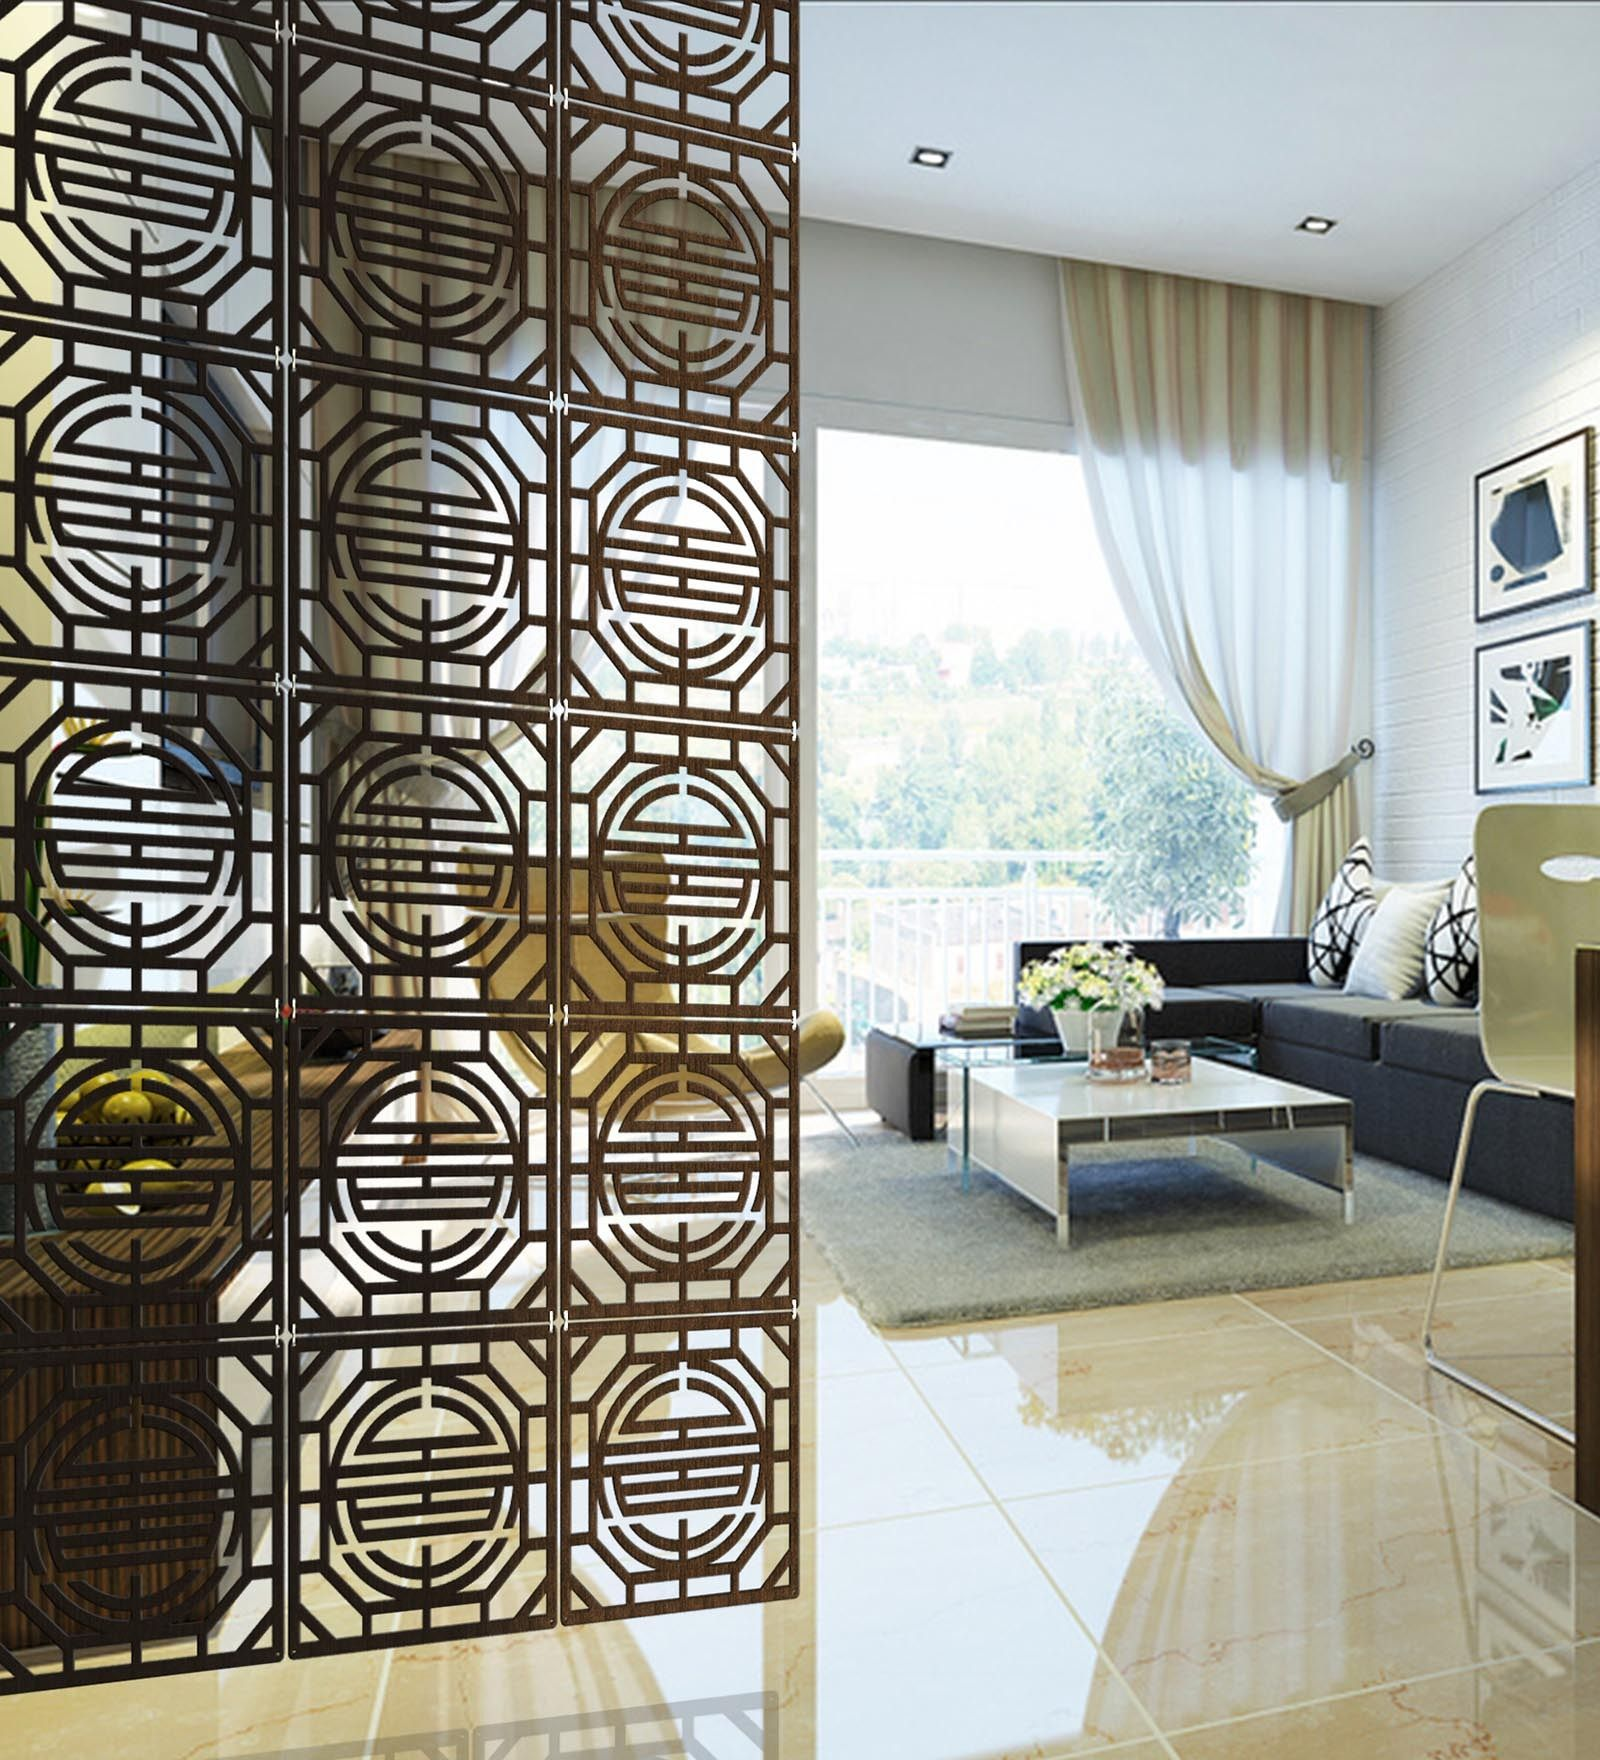 Buy Planet Decor Wenge Acrylic With Wooden Lamination Geometric Room Divider Online Screens Dividers